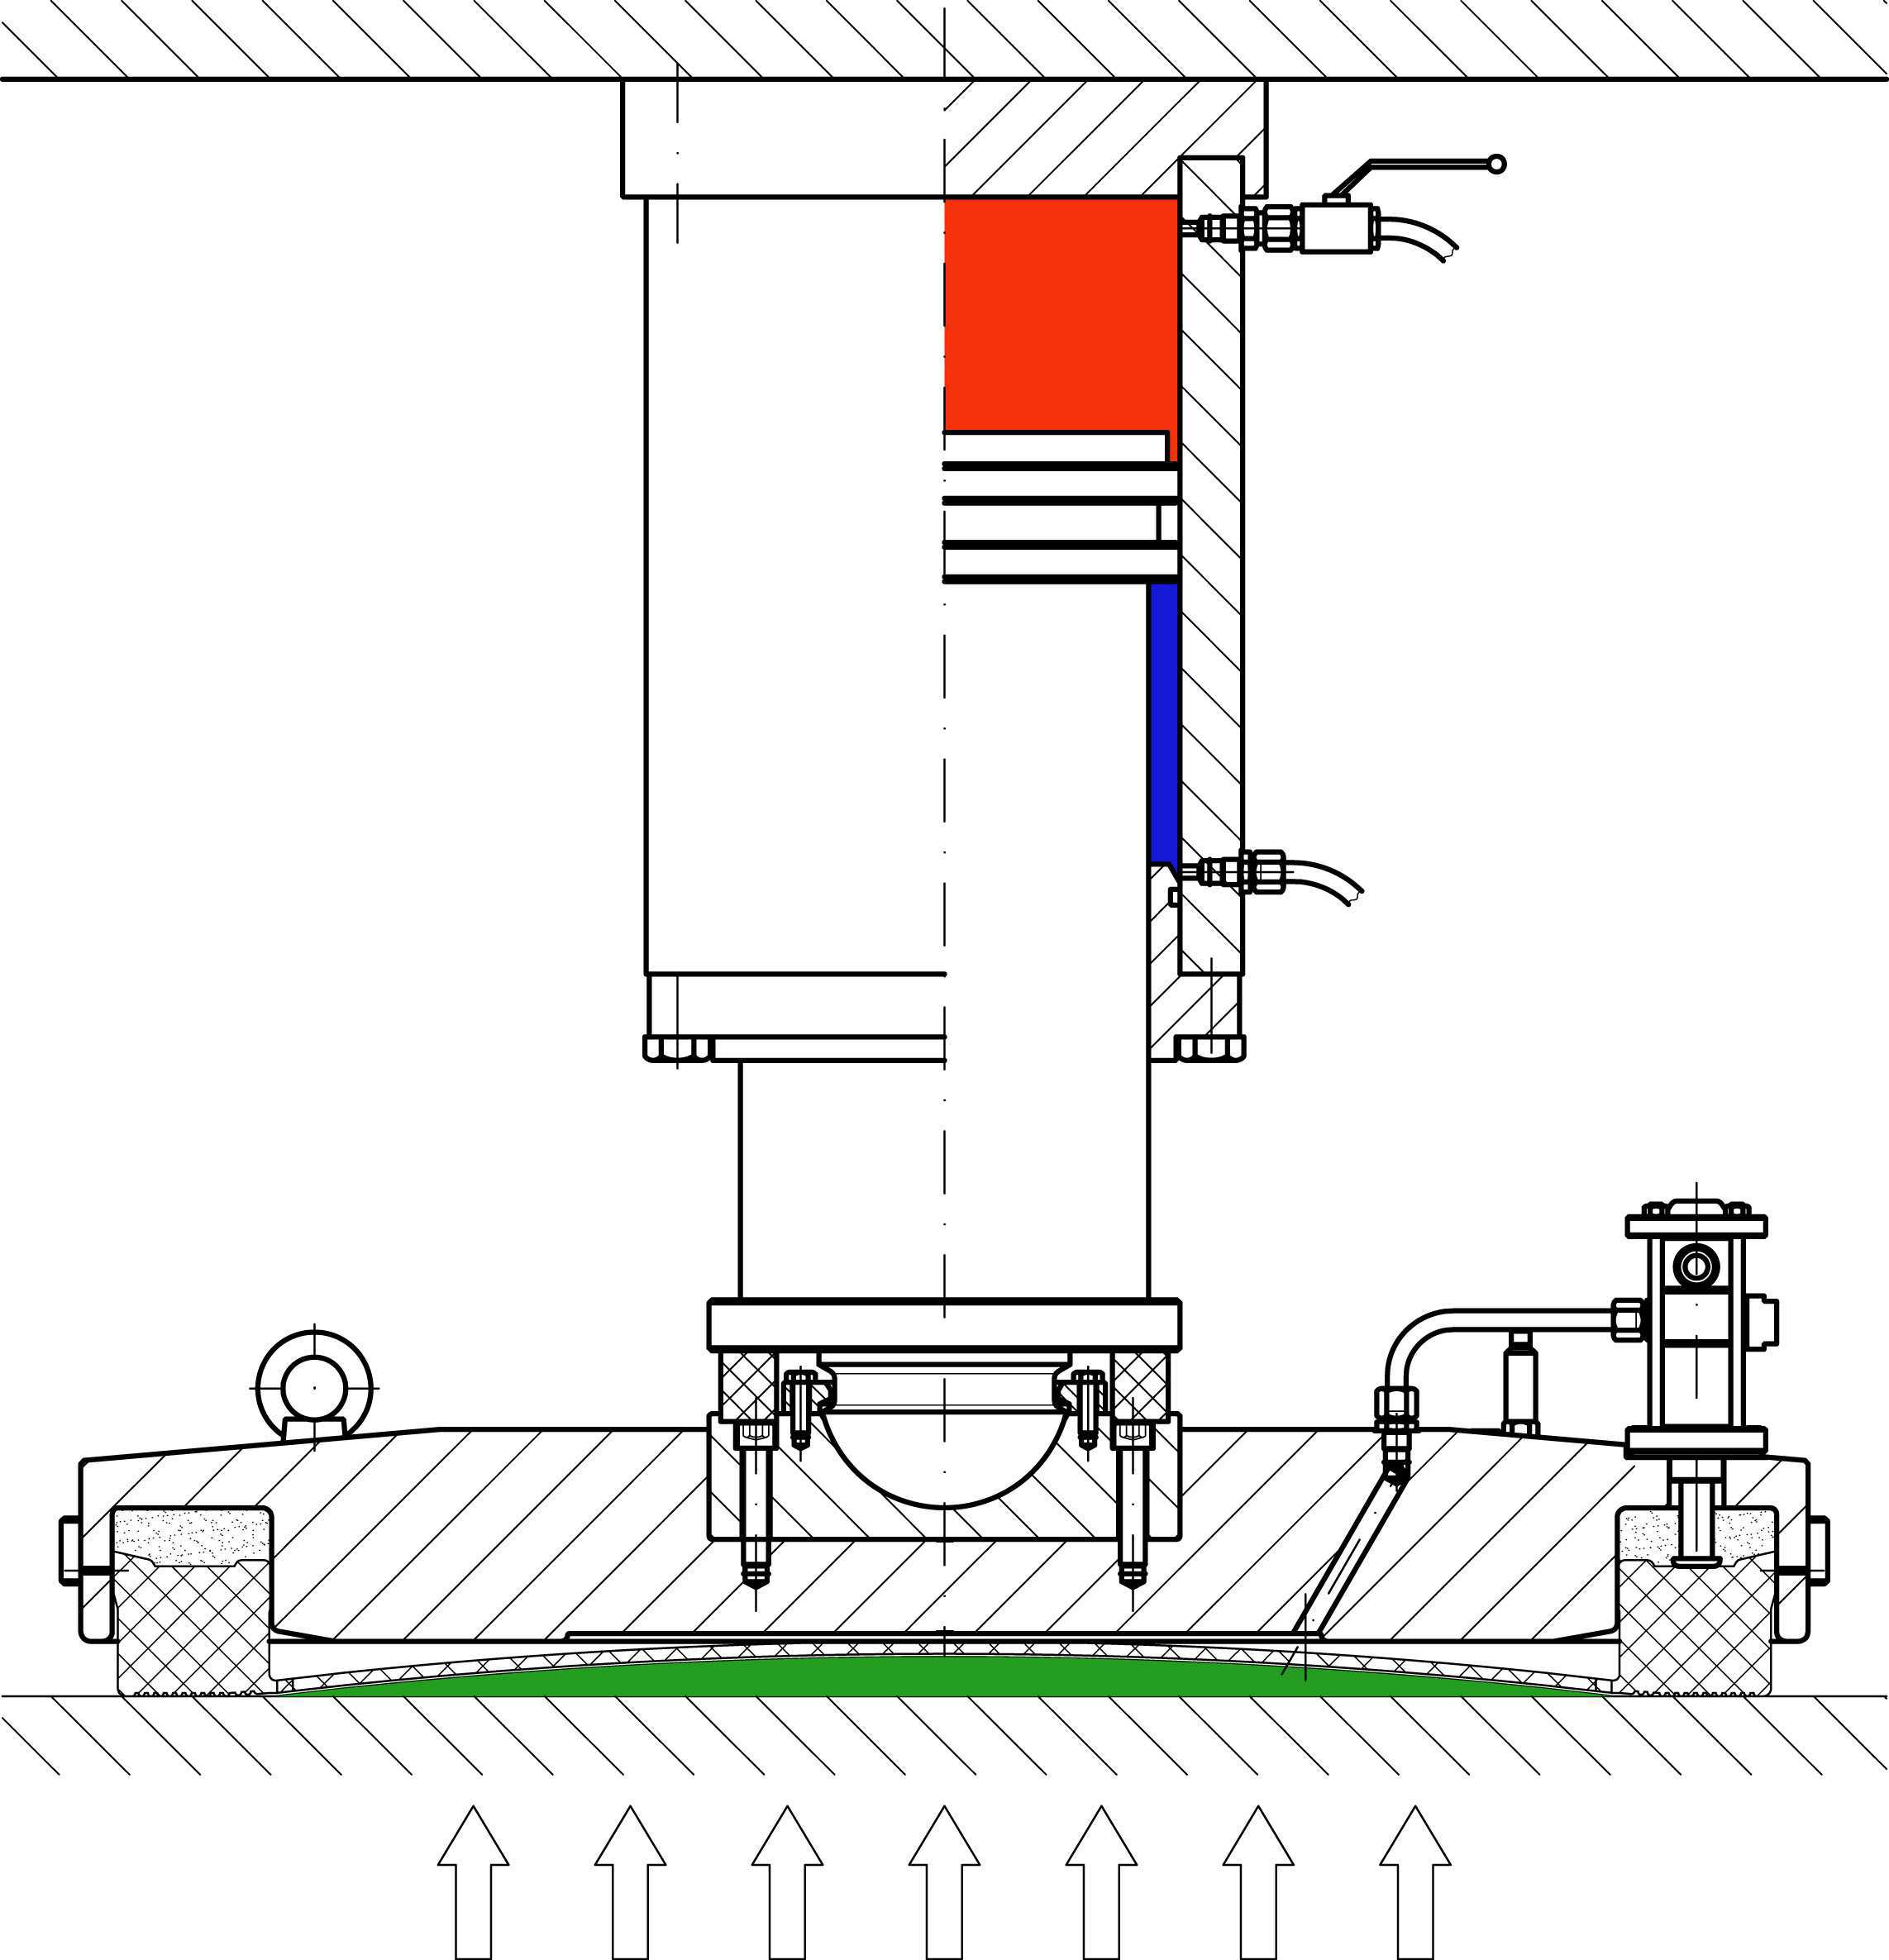 Hebetec Equipment Sliding Hydraulic Jack Diagram After Taking Over Of Load By The Cylinders Chambers Support Plate Are Inflated With Compressed Air